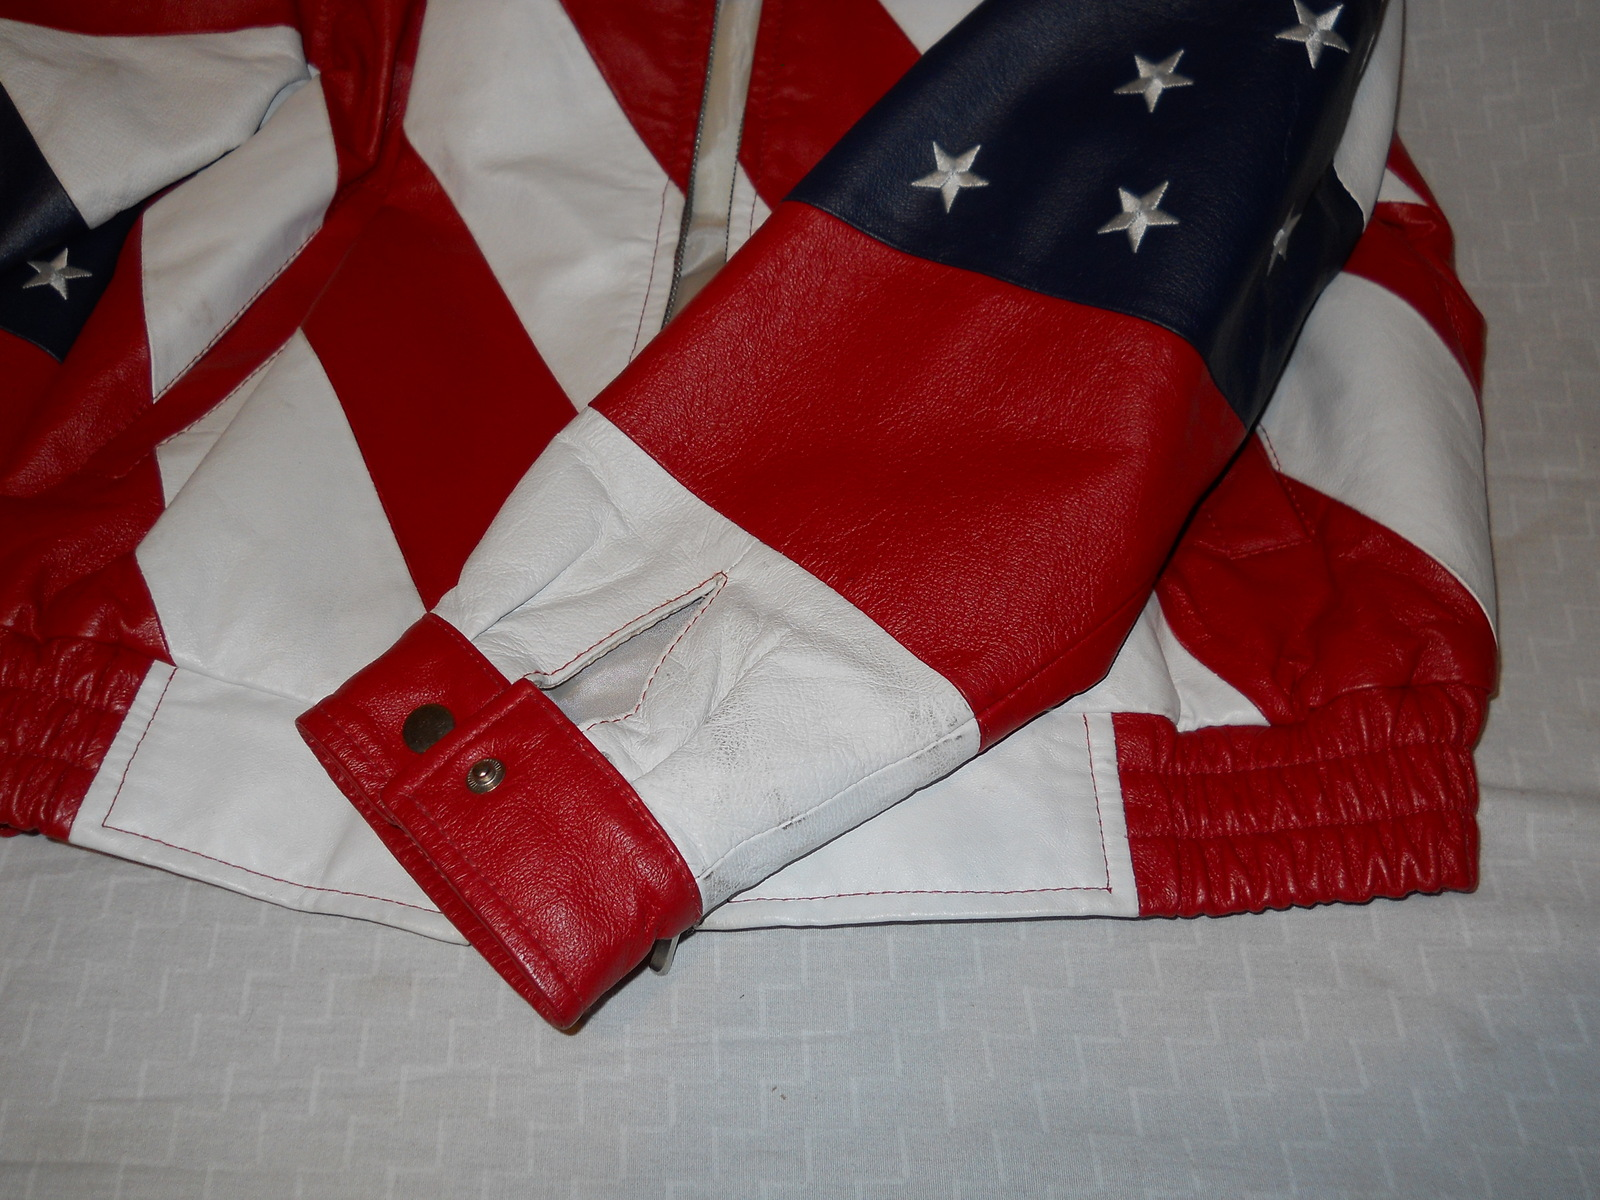 American Flag Stars & Stripes Red White Blue By USA Leathers Motorcycle Extra LG image 2